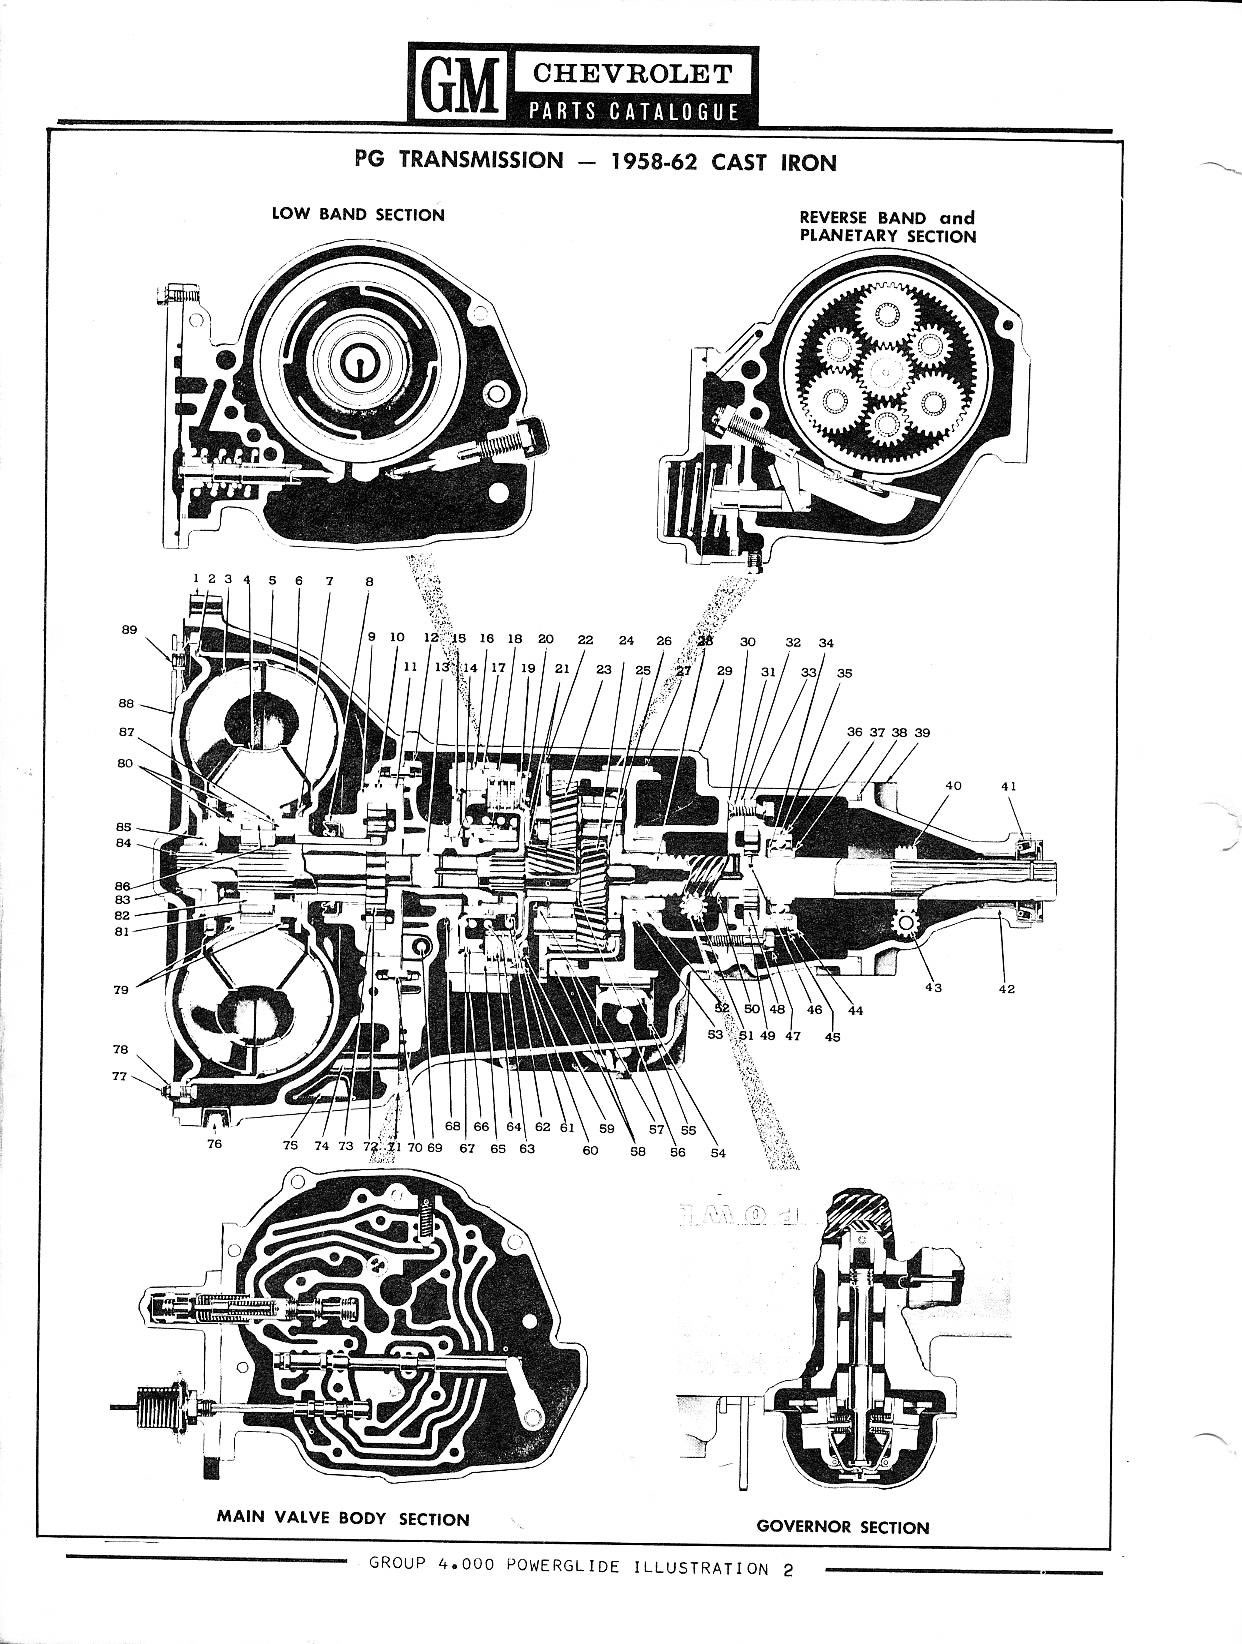 wiring diagram also 1973 corvette wiring harness furthermore 1973